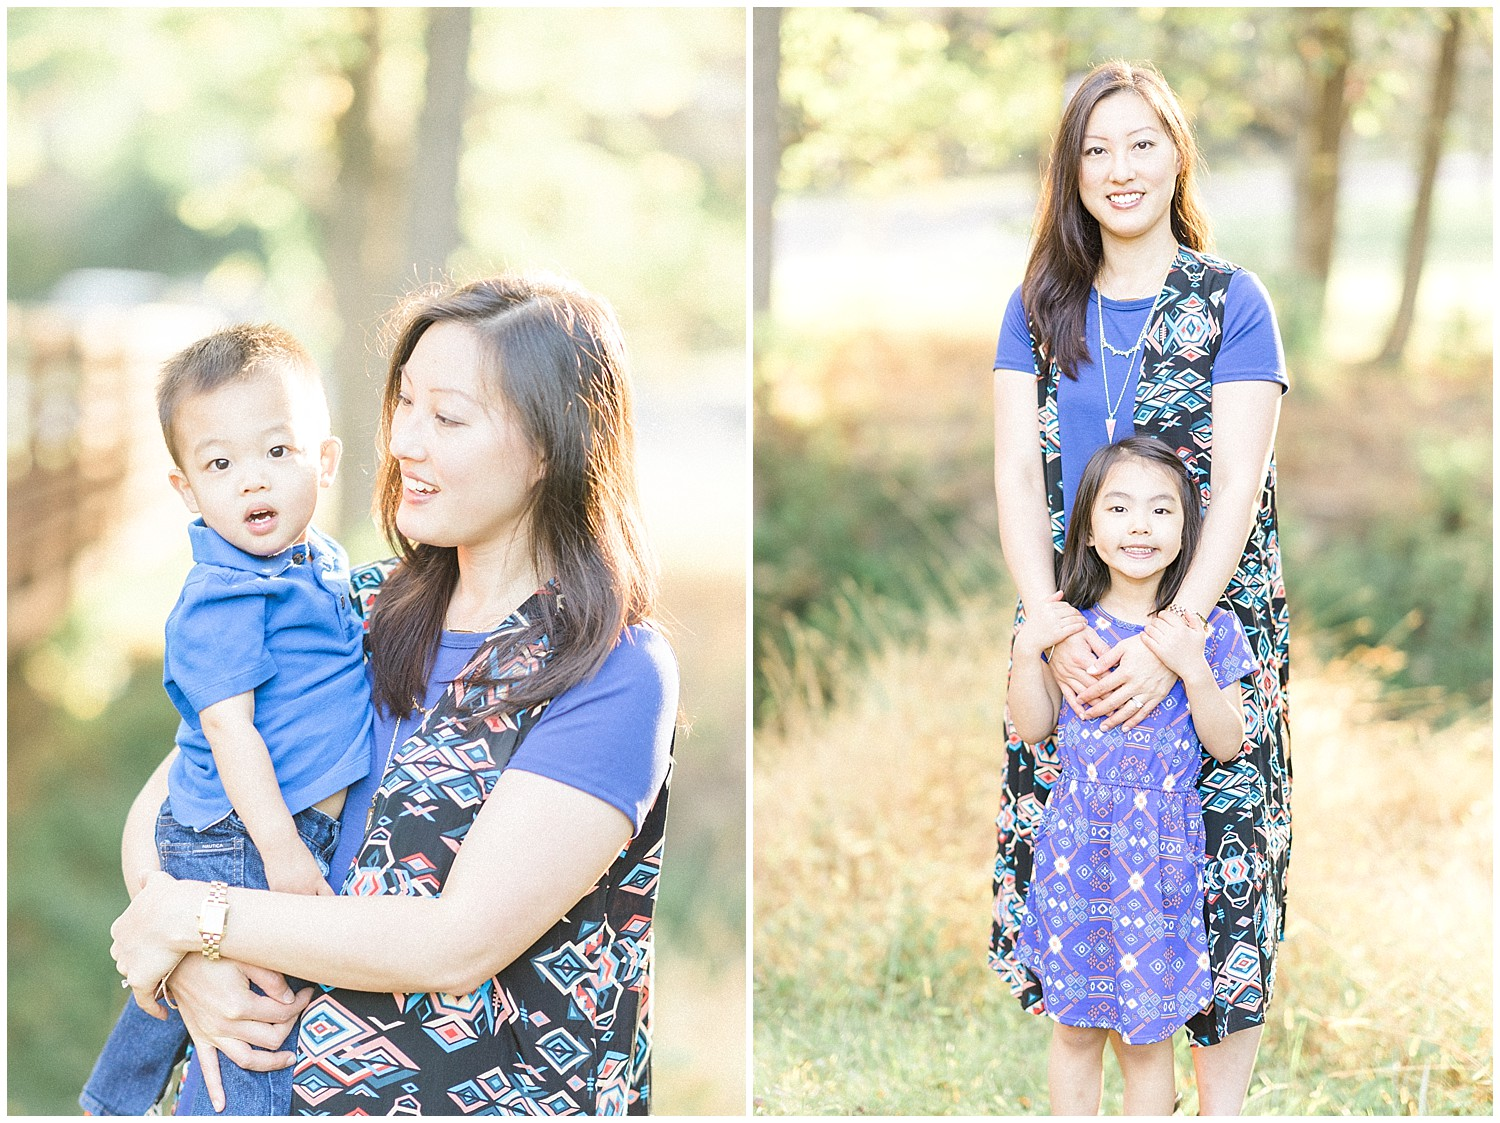 Winnie Dora Photography- Rockville, Maryland family lifestyle photographer.